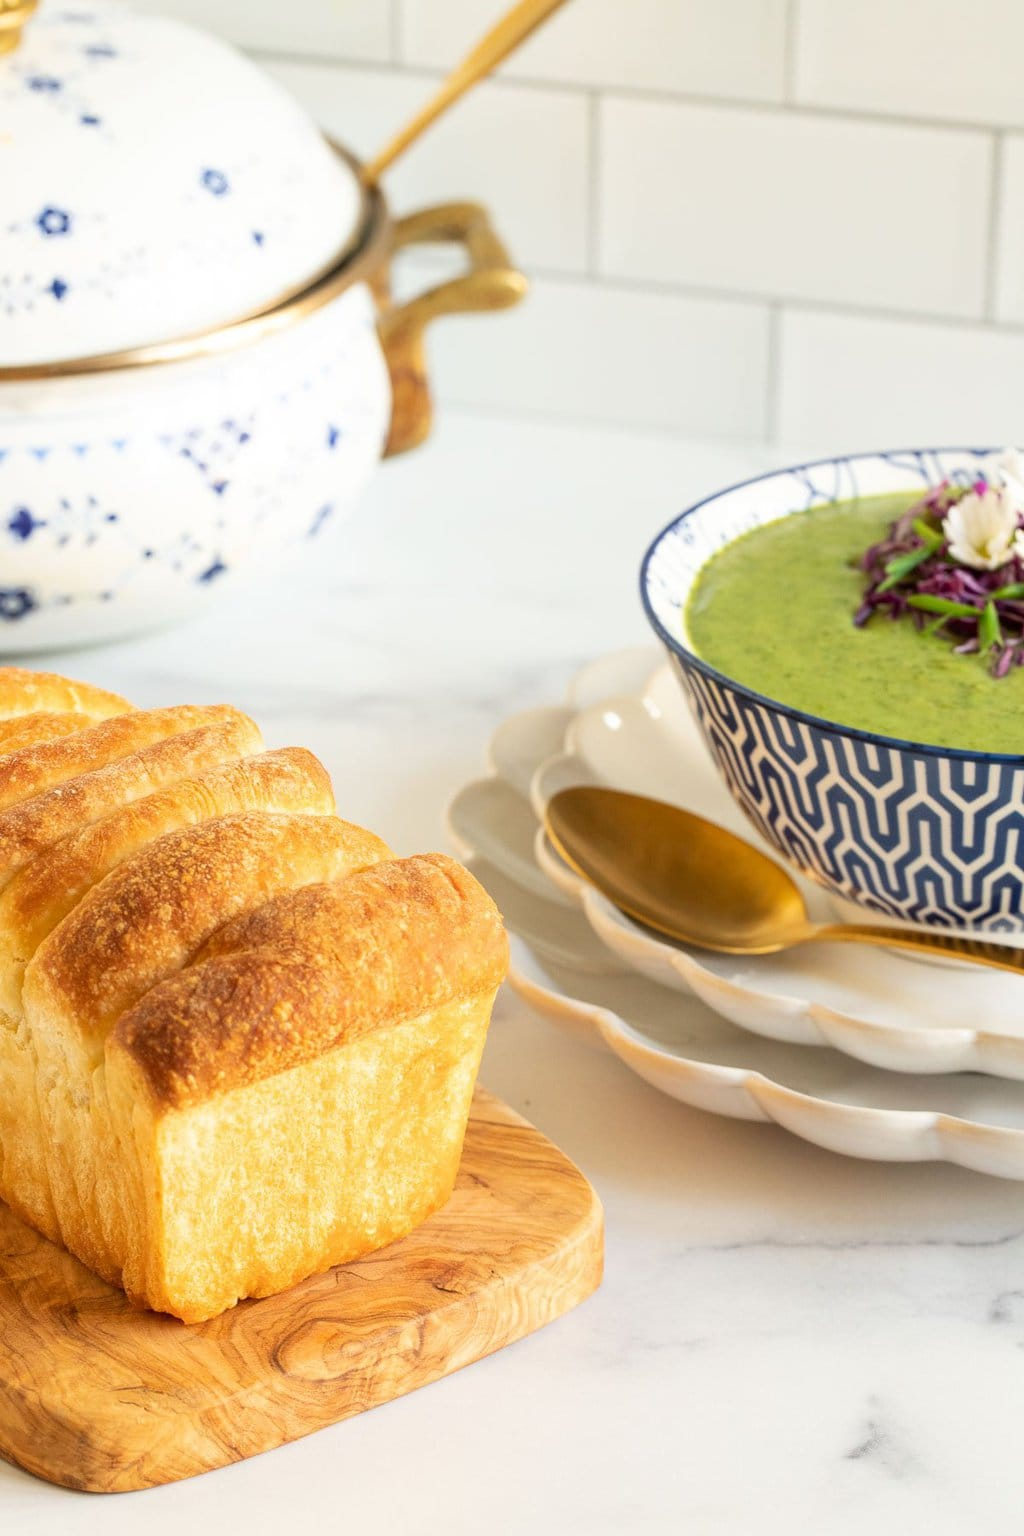 Vertical photo of a bowl of Thai Broccoli Spinach Soup with homemade pull apart bread in the foreground.